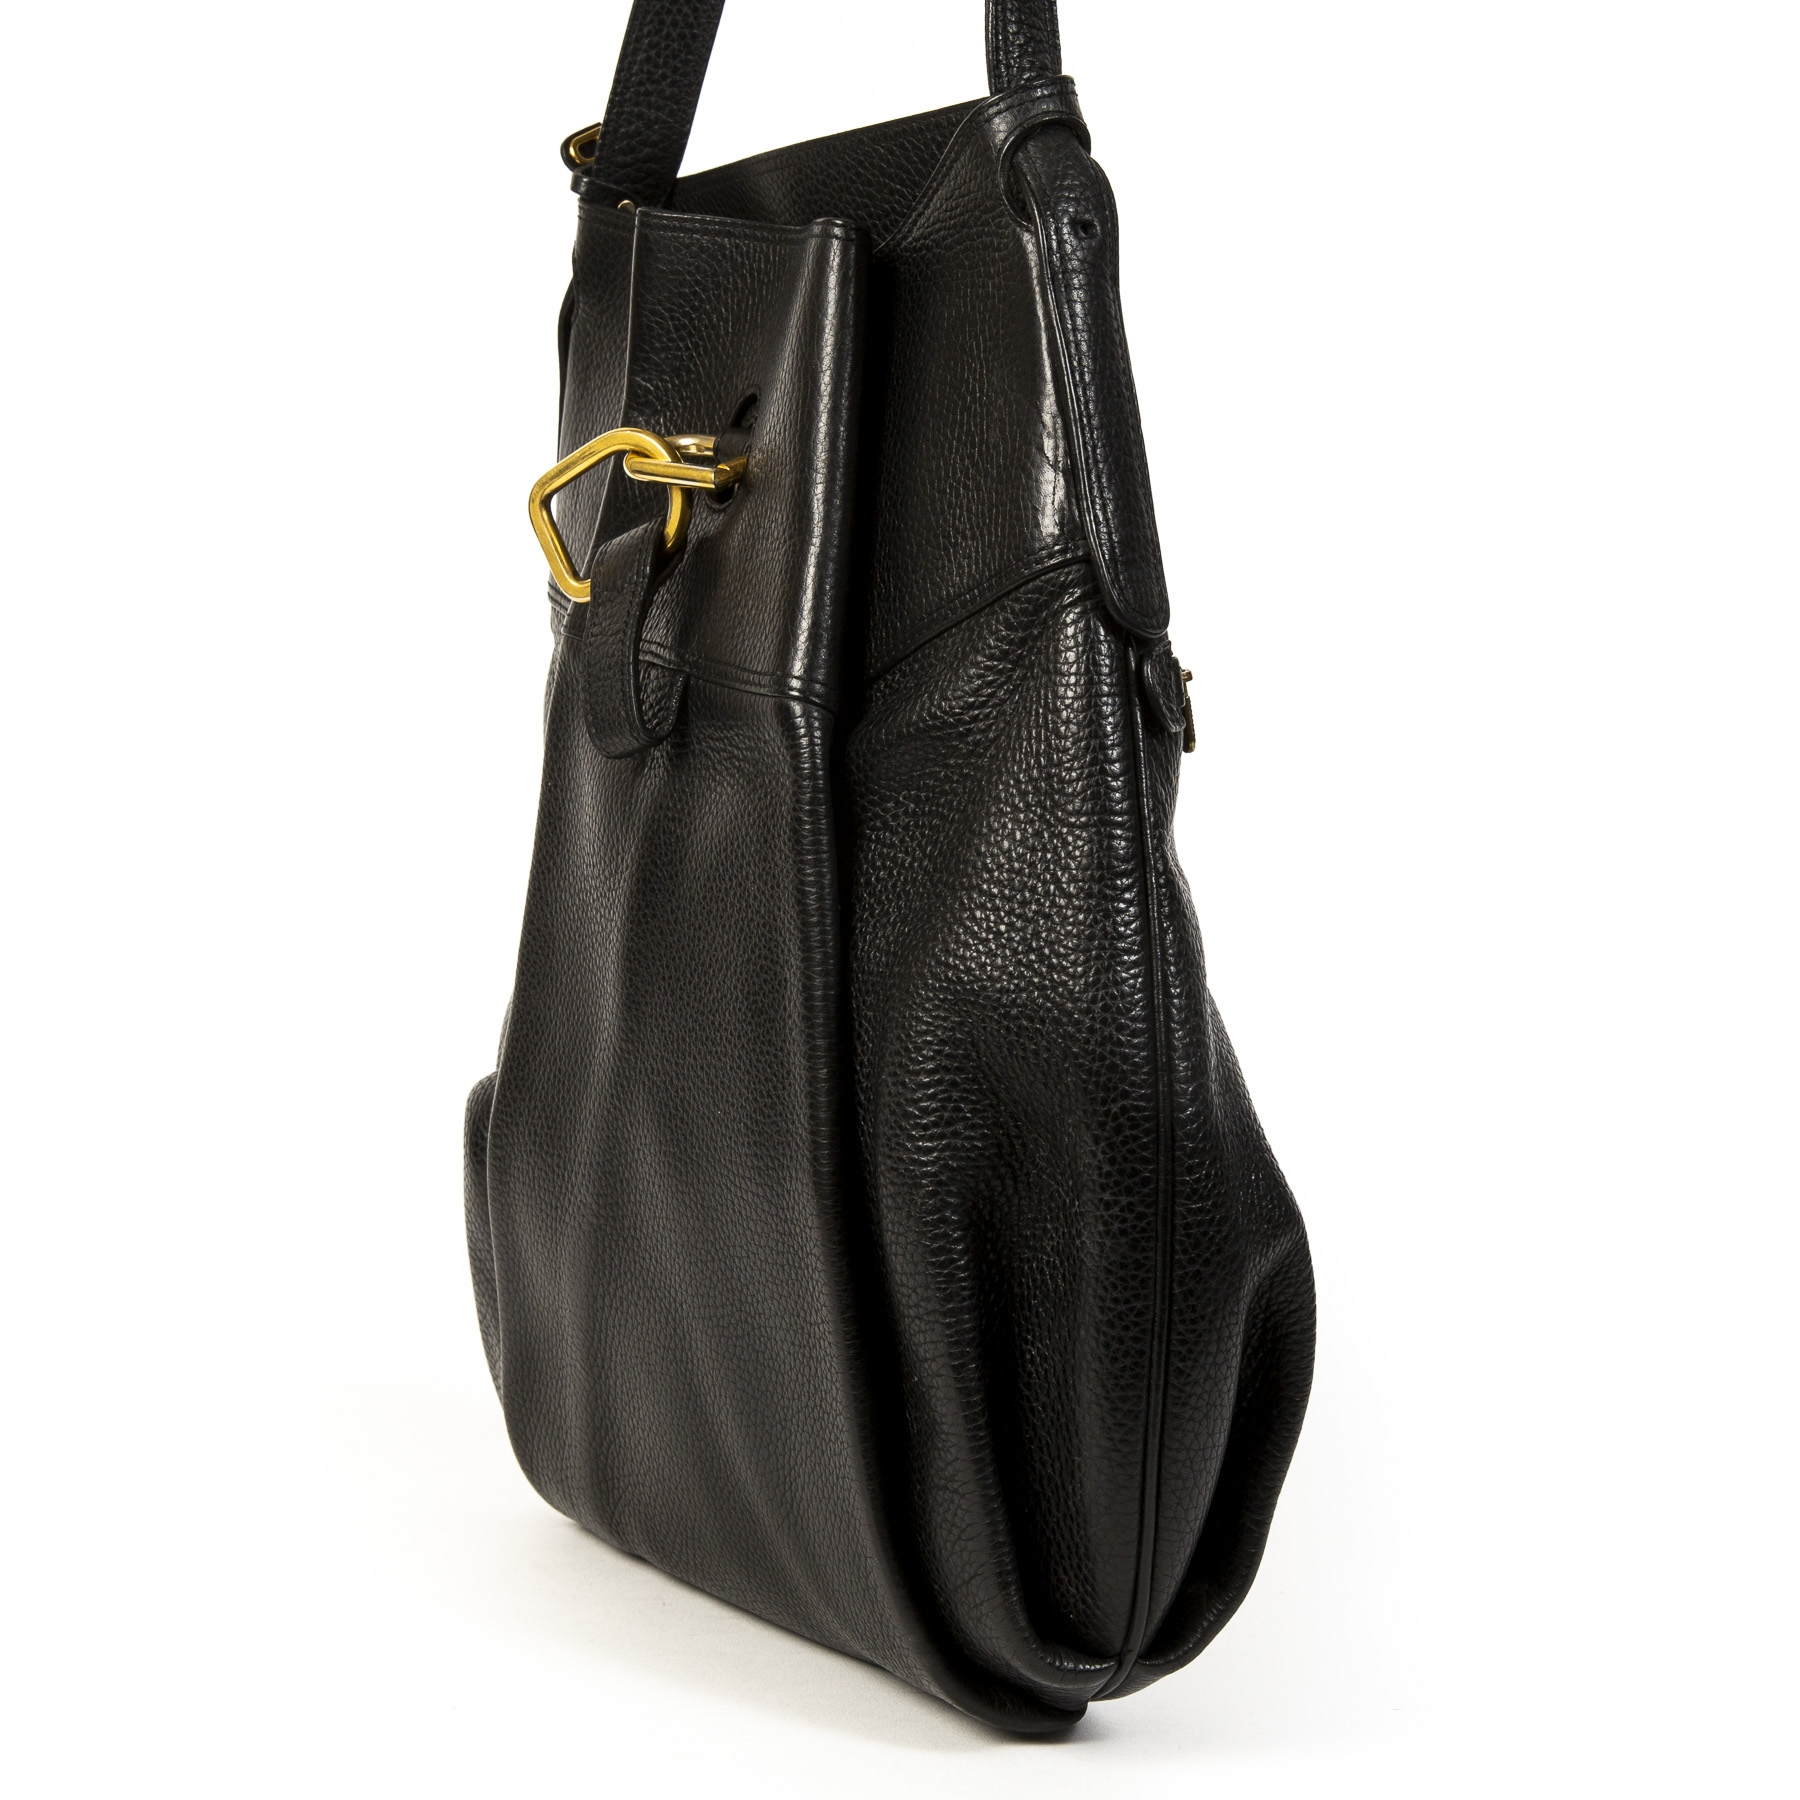 Delvaux Black Faust Bag for the best price available online at Labellov secondhand luxury